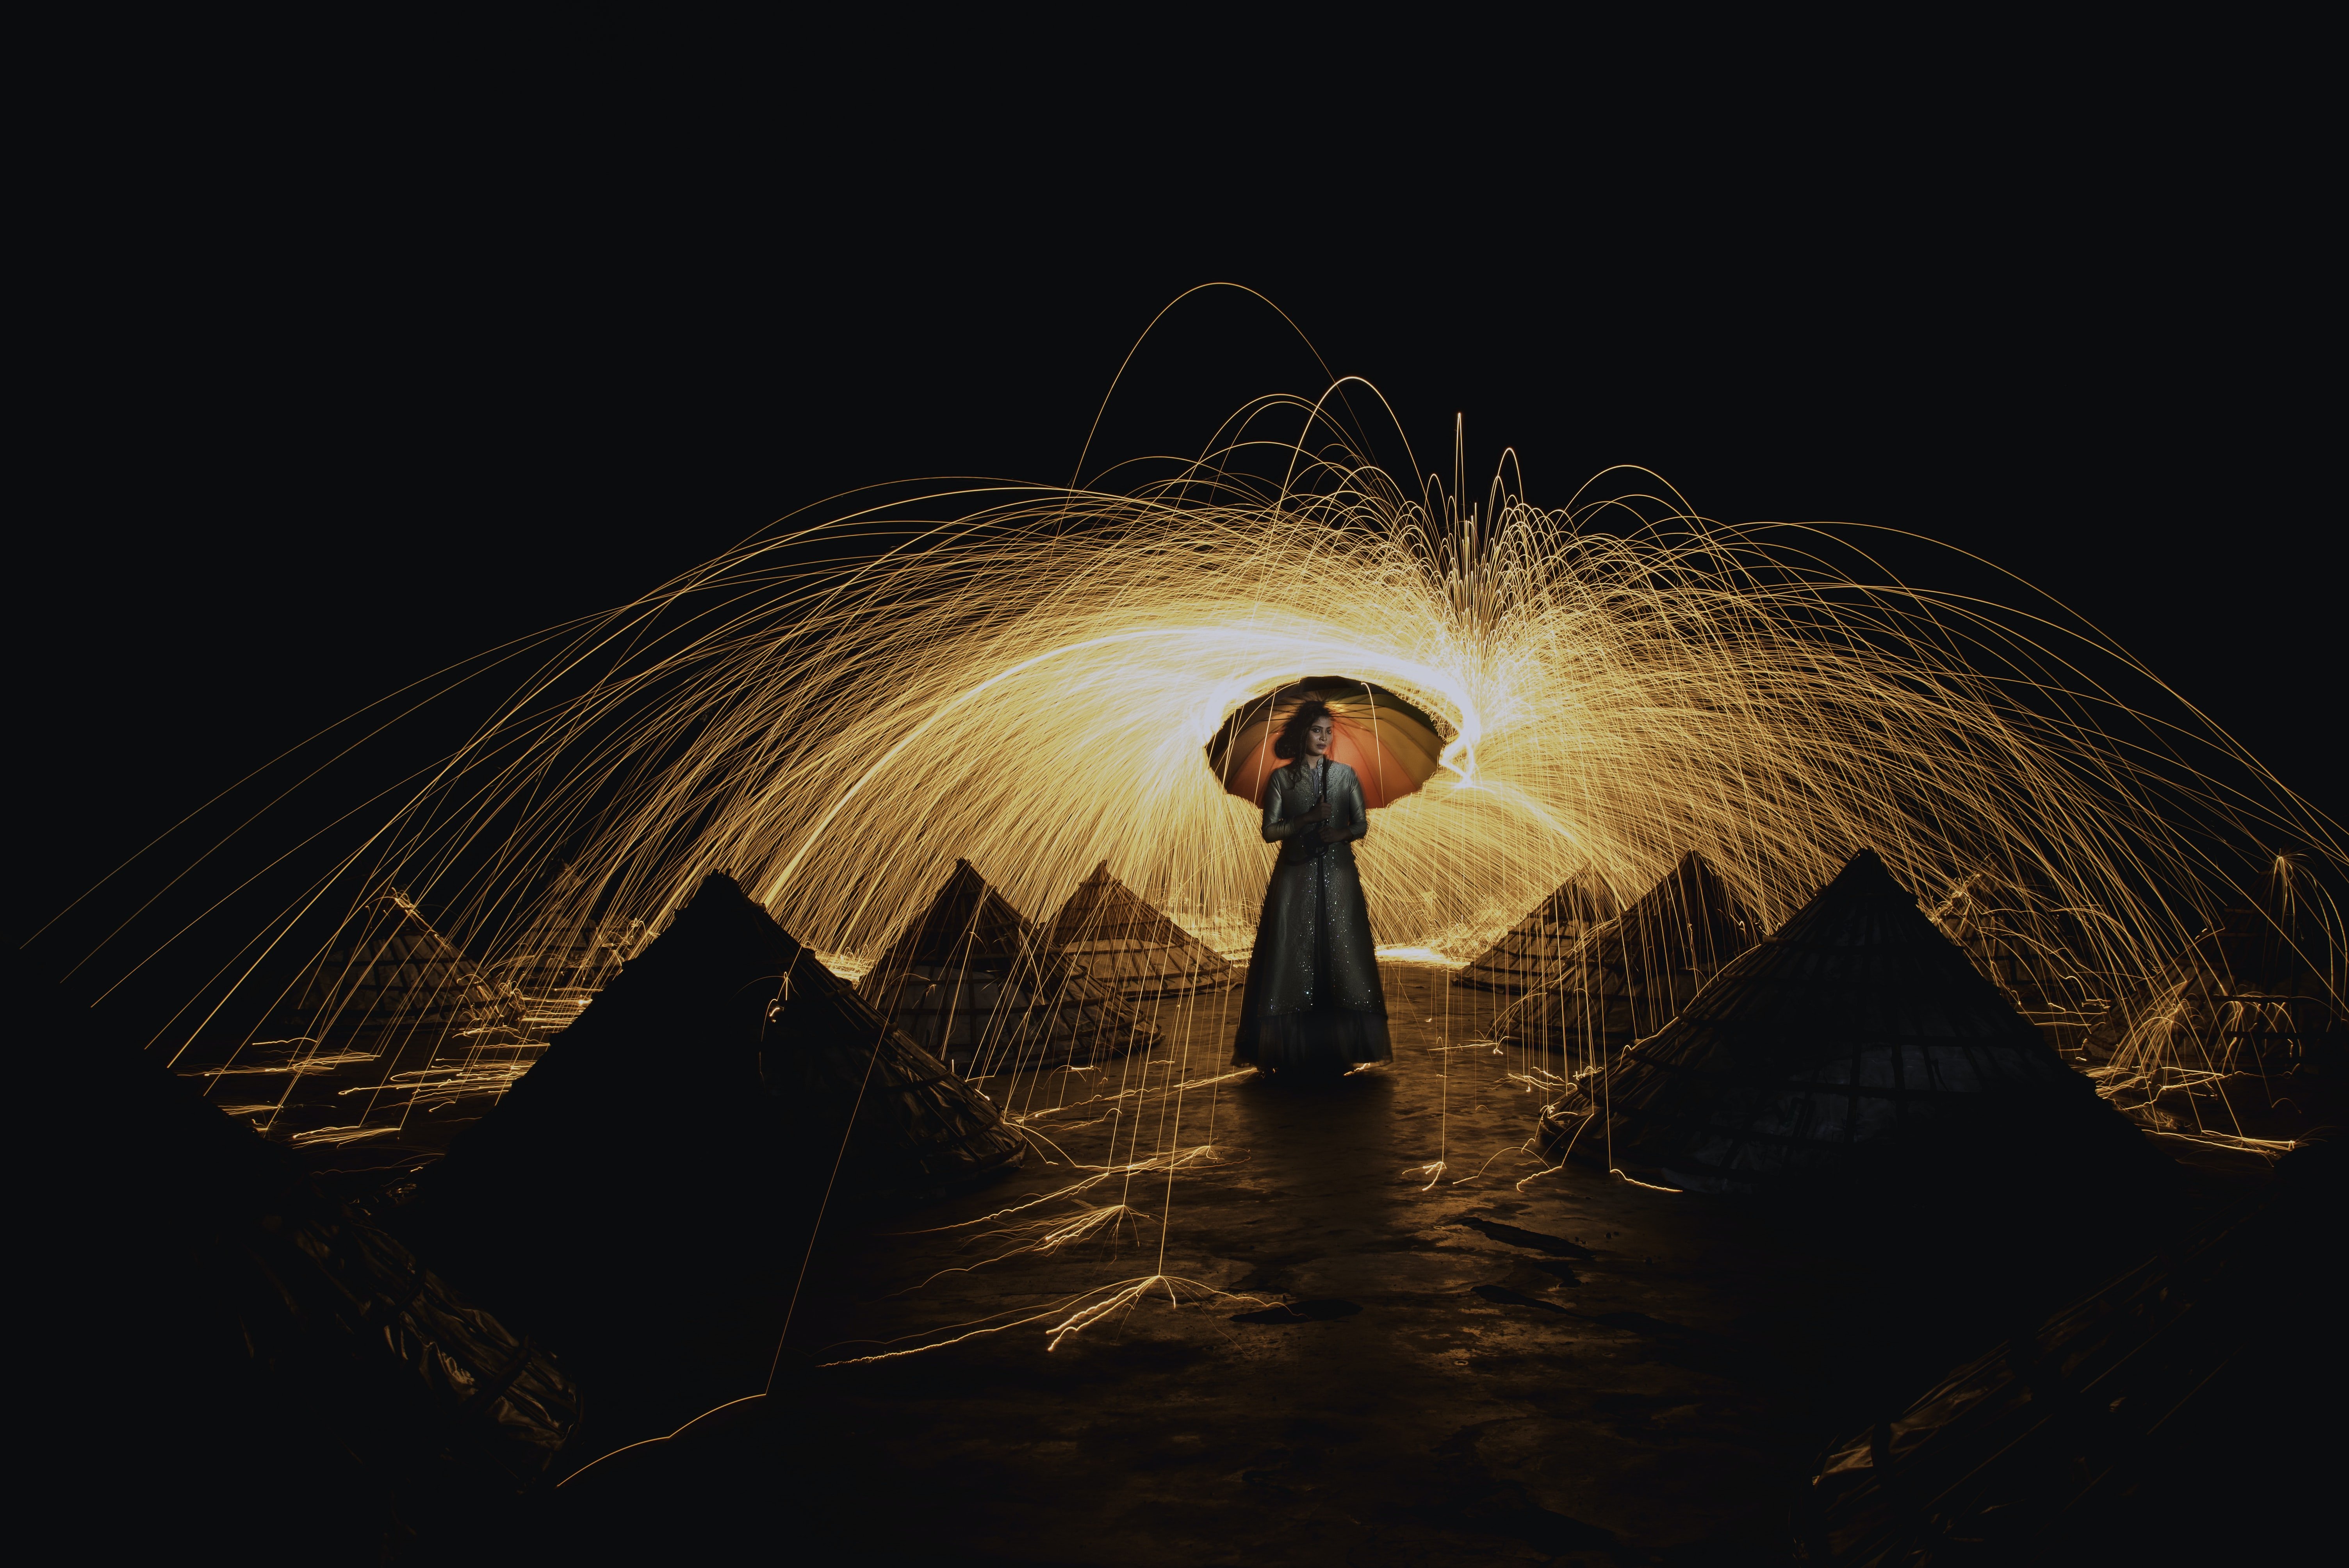 time lapse photography of woman standing in between pyramids holding umbrella